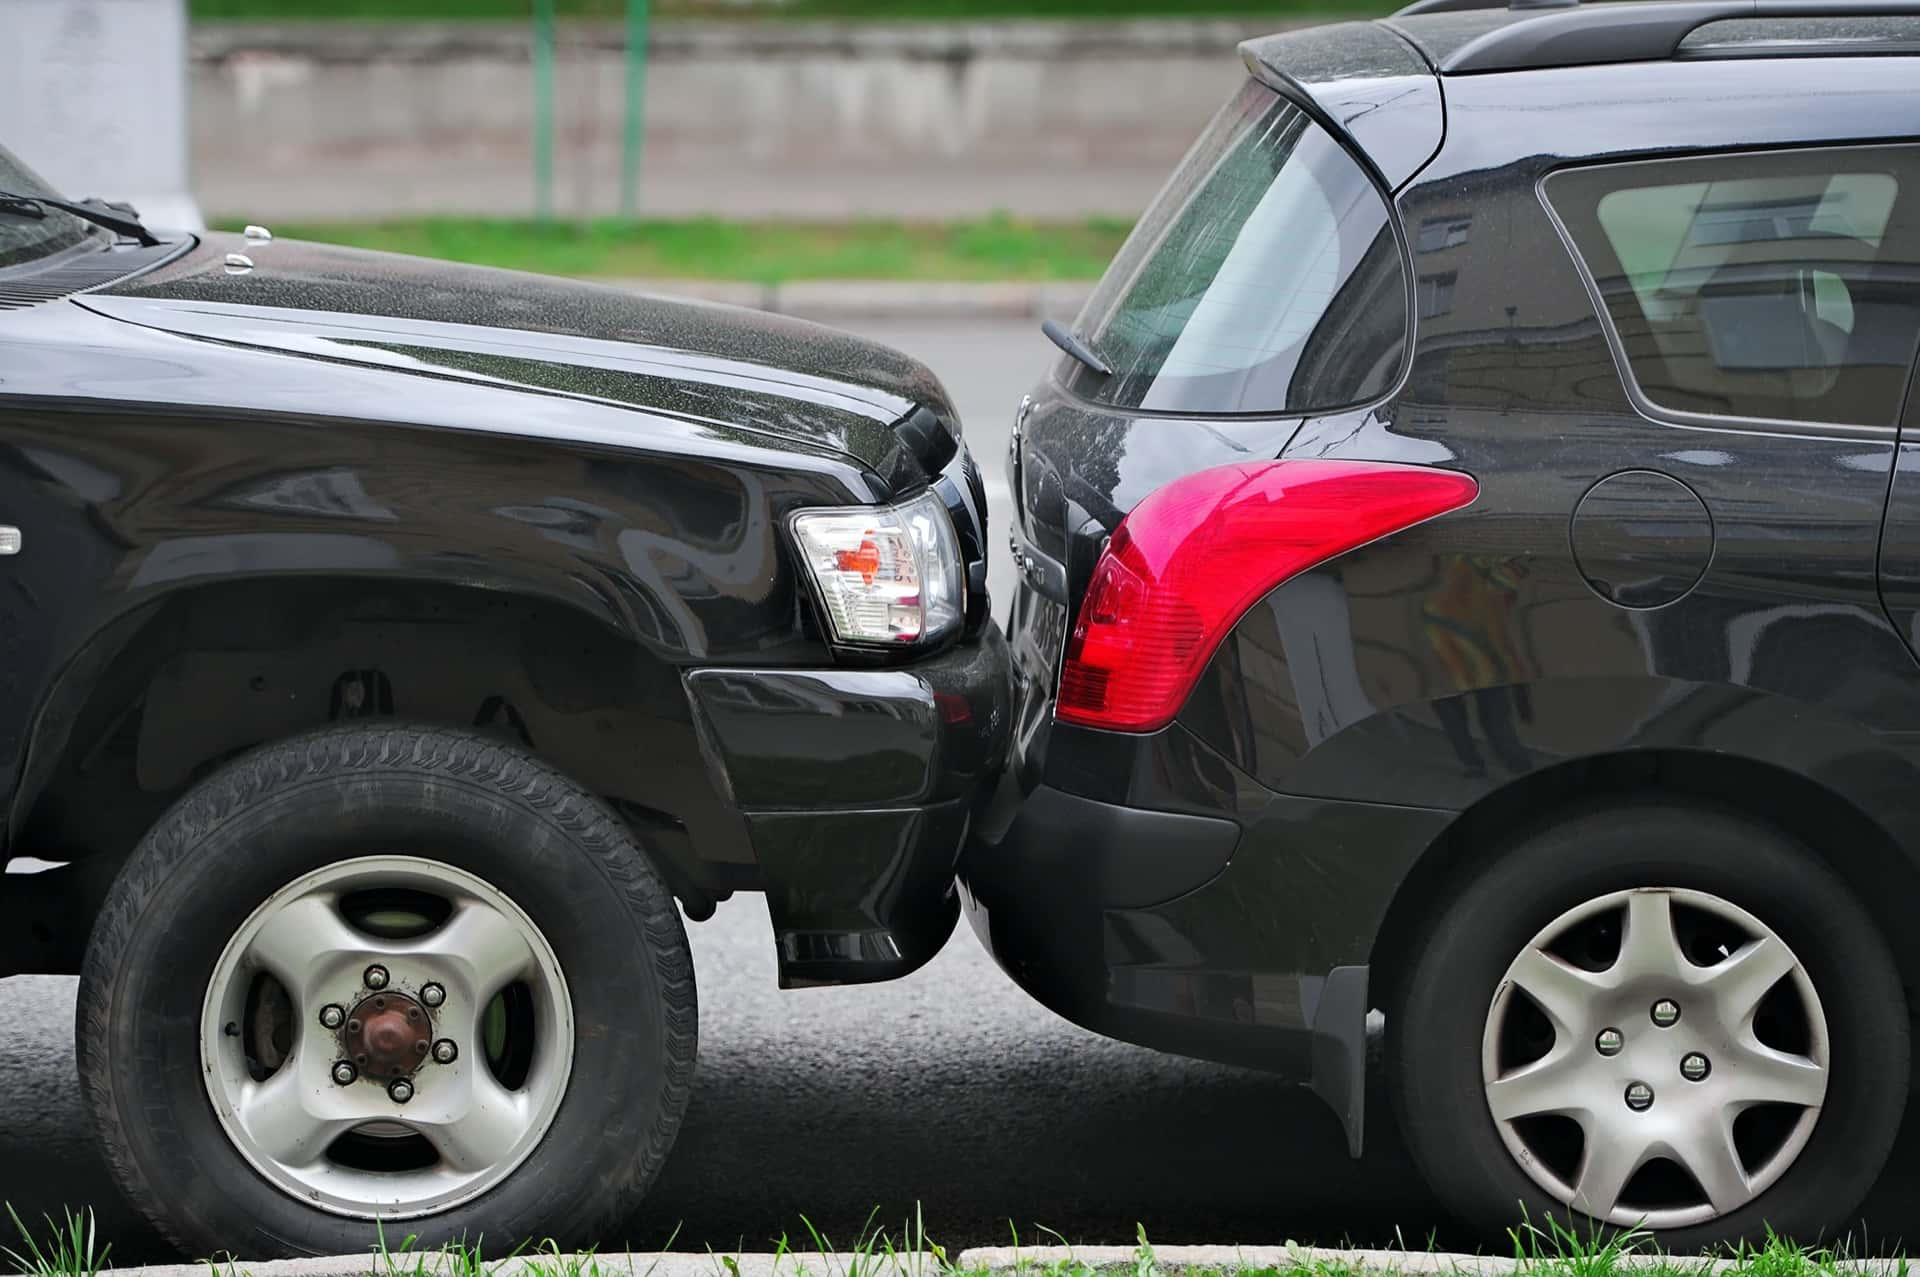 Using the Small Claims Court to Obtain Compensation After a Minor Auto Accident in California